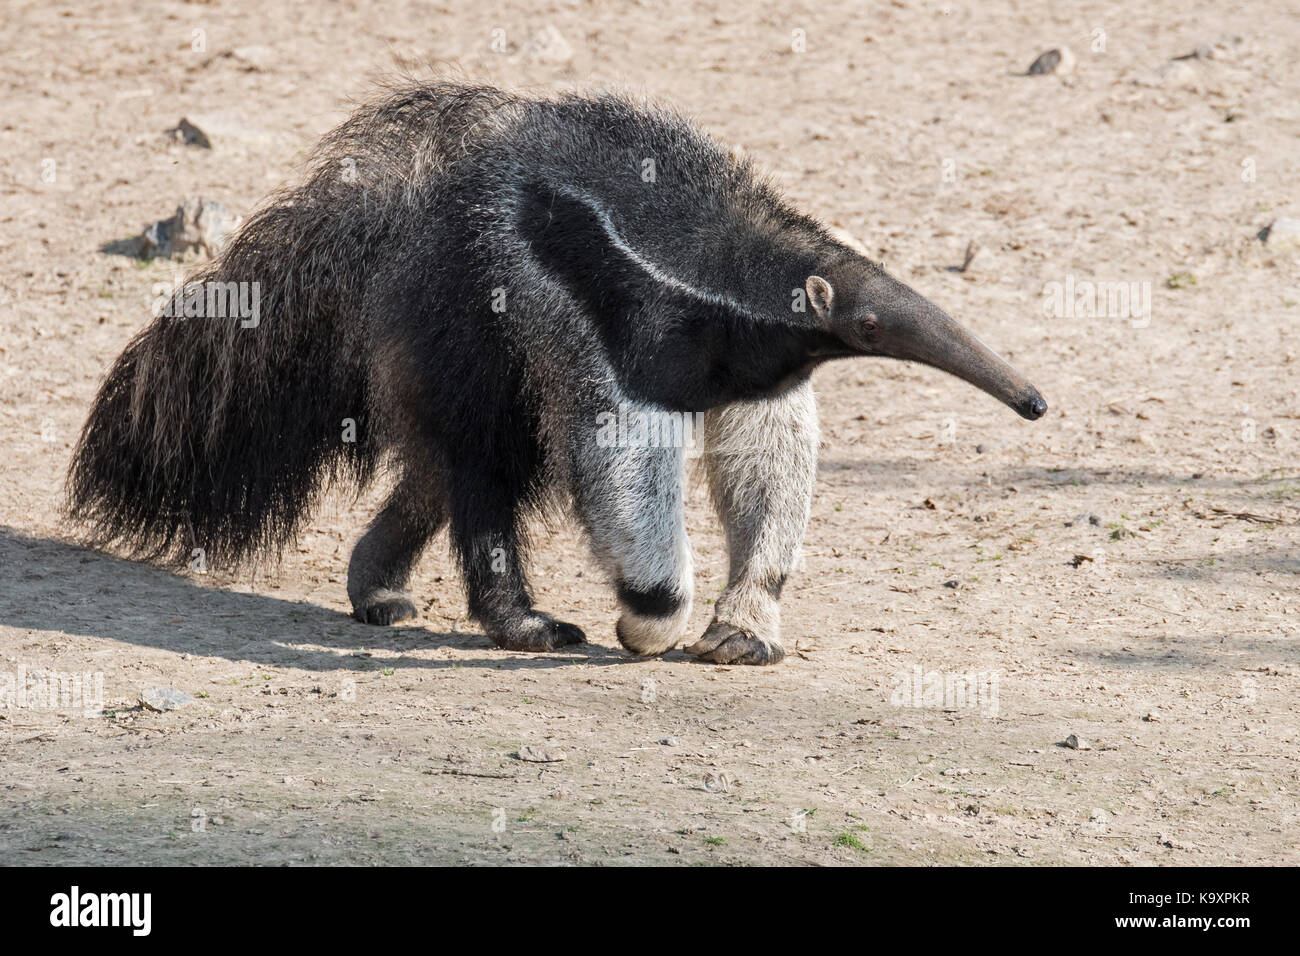 Giant anteater / ant bear (Myrmecophaga tridactyla) insectivore native to Central and South America - Stock Image